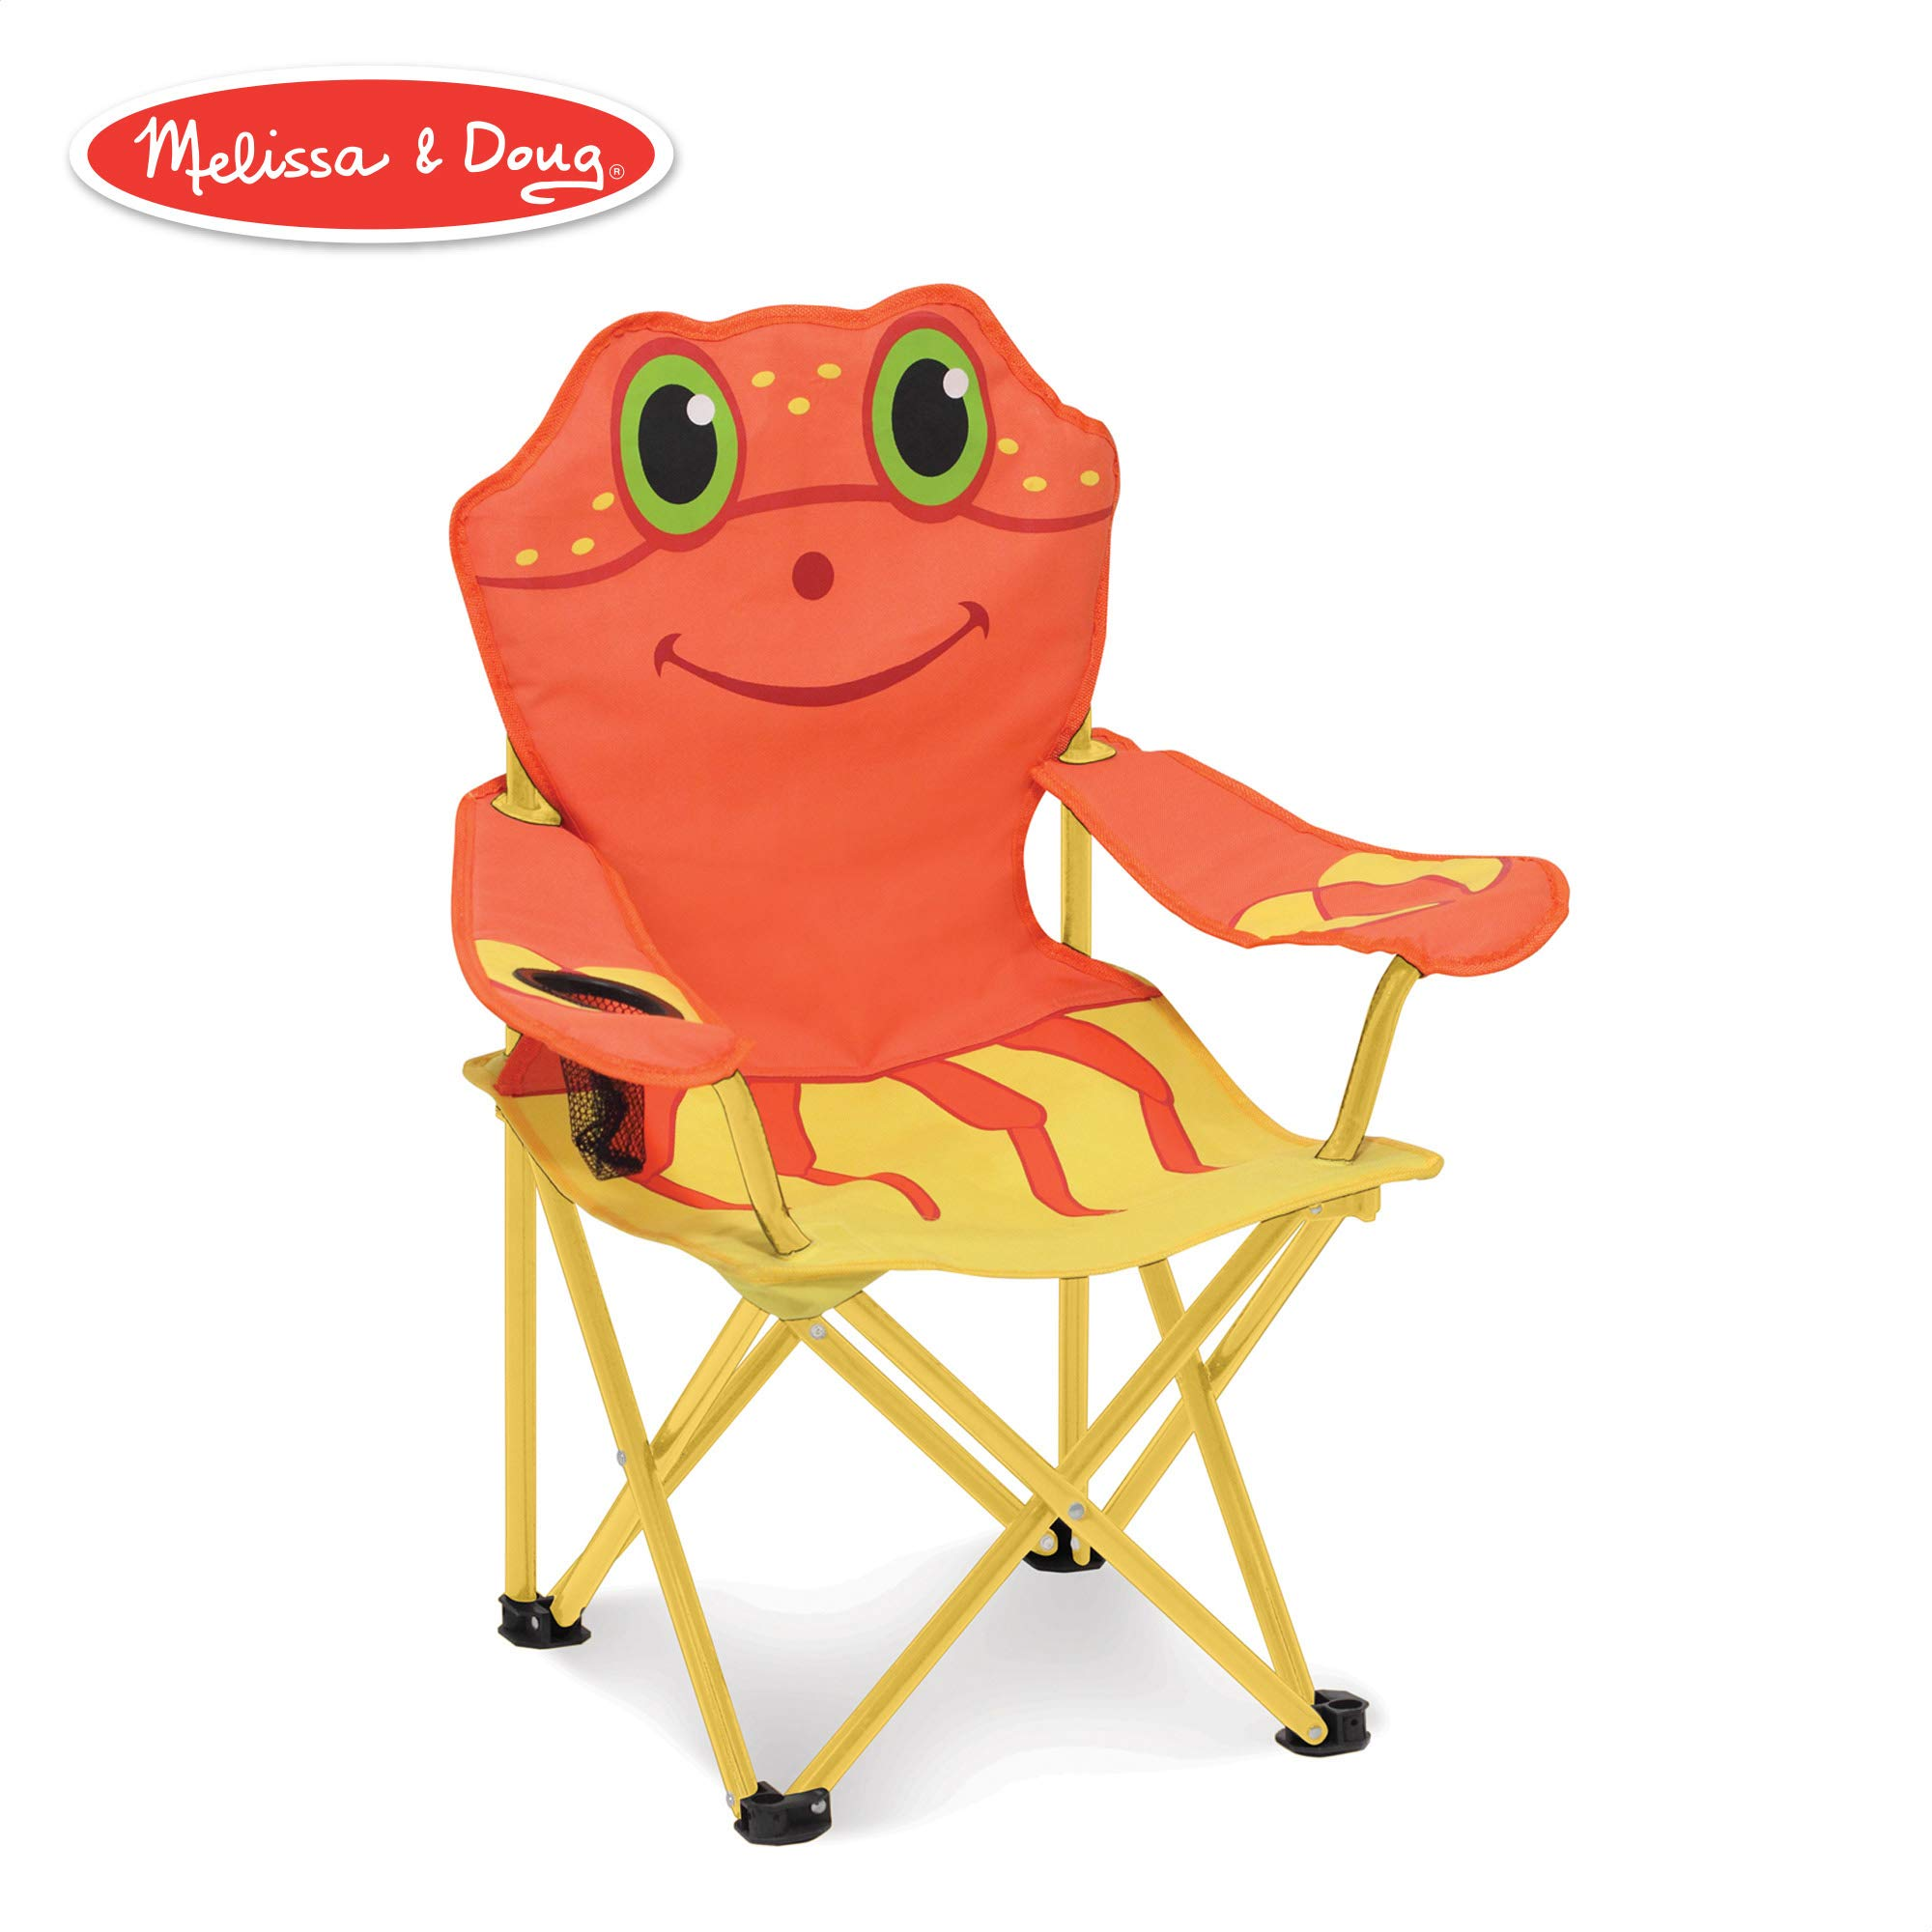 Melissa & Doug Sunny Patch Clicker Crab Folding Beach Chair for Kids by Melissa & Doug